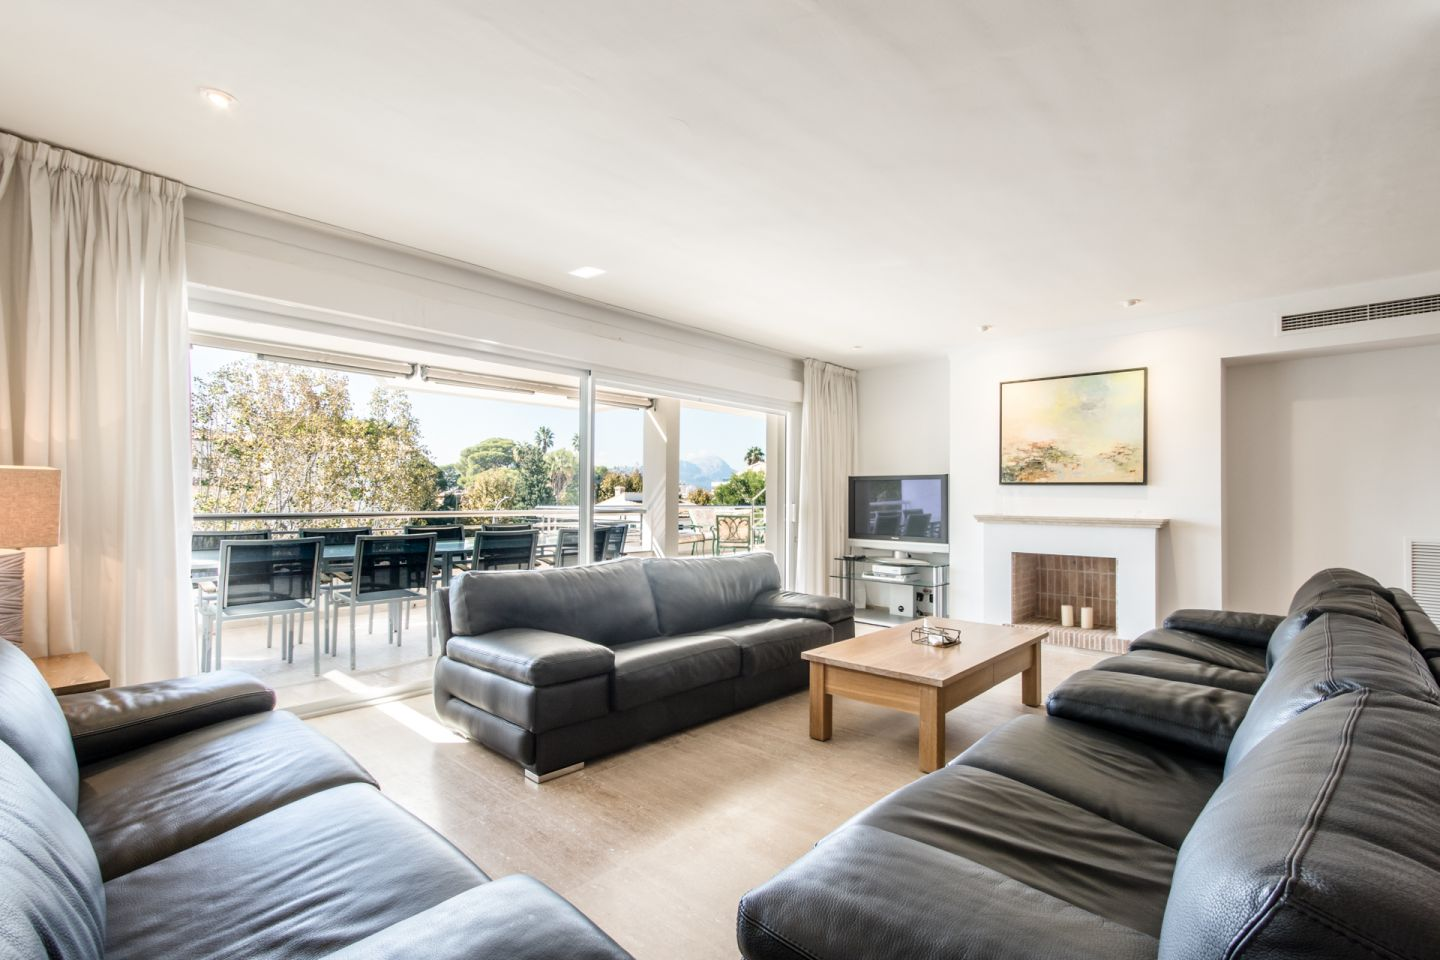 5 Bed Penthouse for sale in PUERTO POLLENSA 3